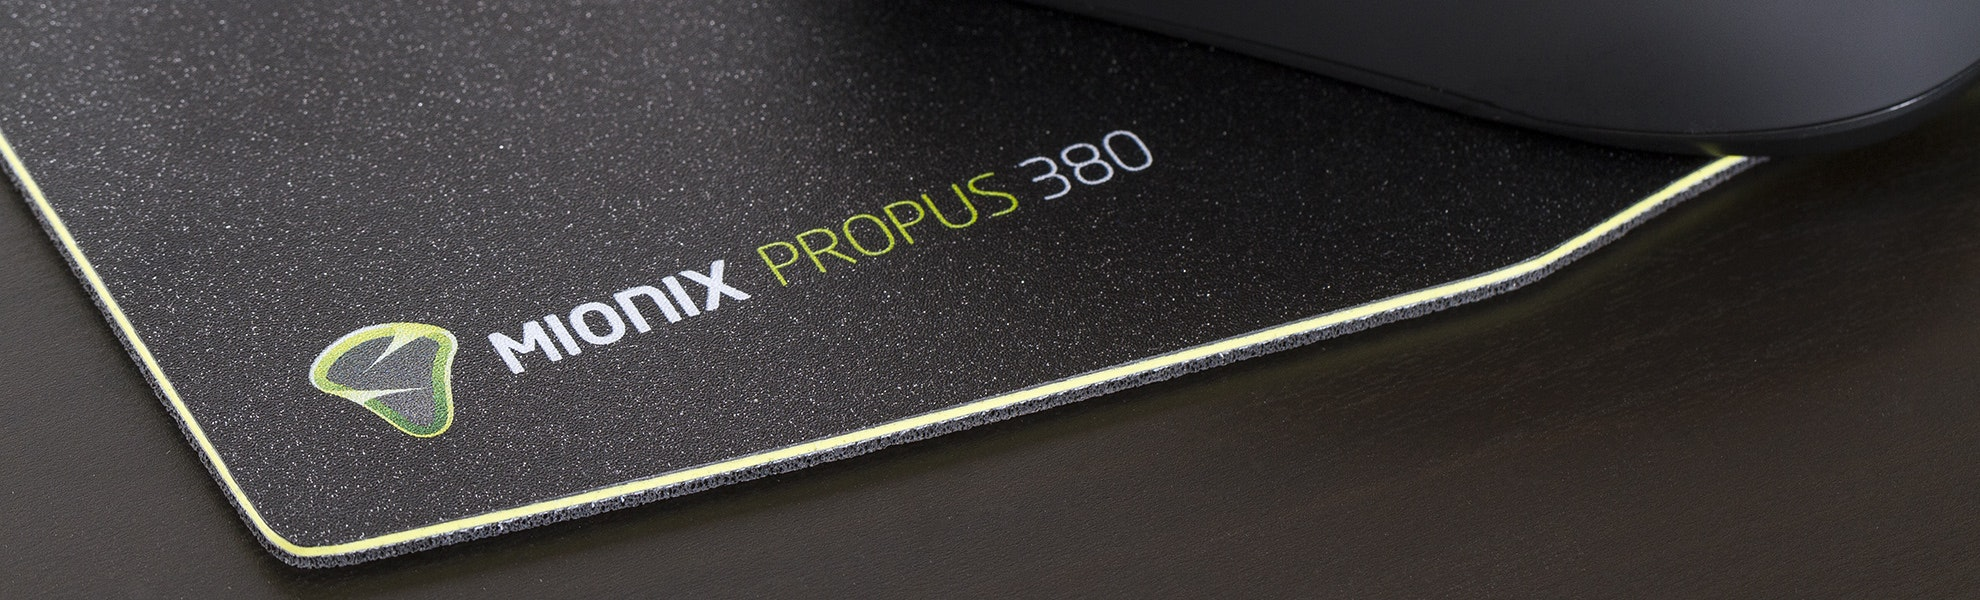 Mionix Propus 380 Gaming Surface